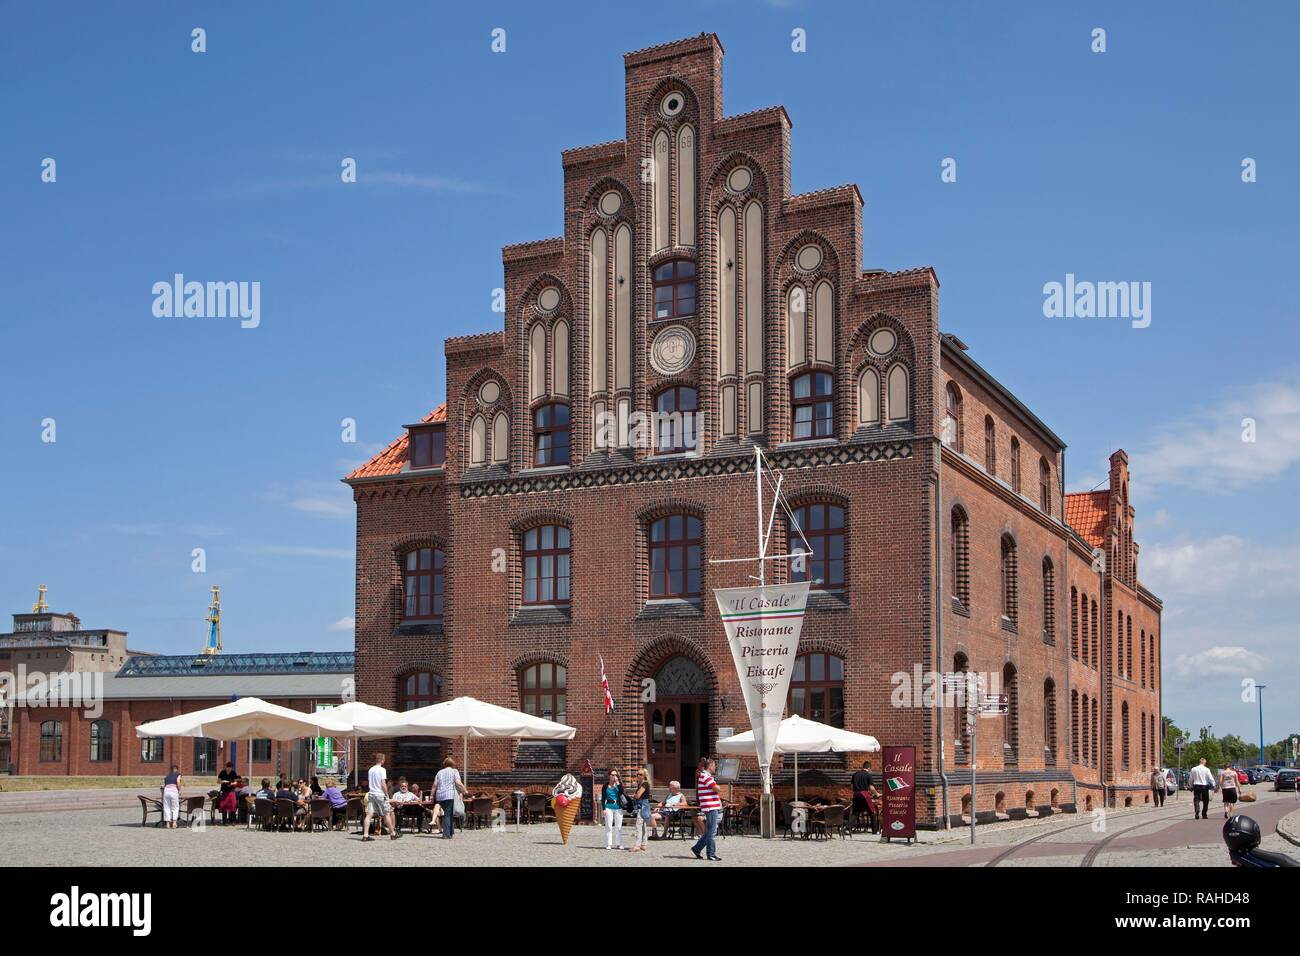 Restaurant in former storehouse, harbour, Wismar, Mecklenburg-Western Pomerania - Stock Image